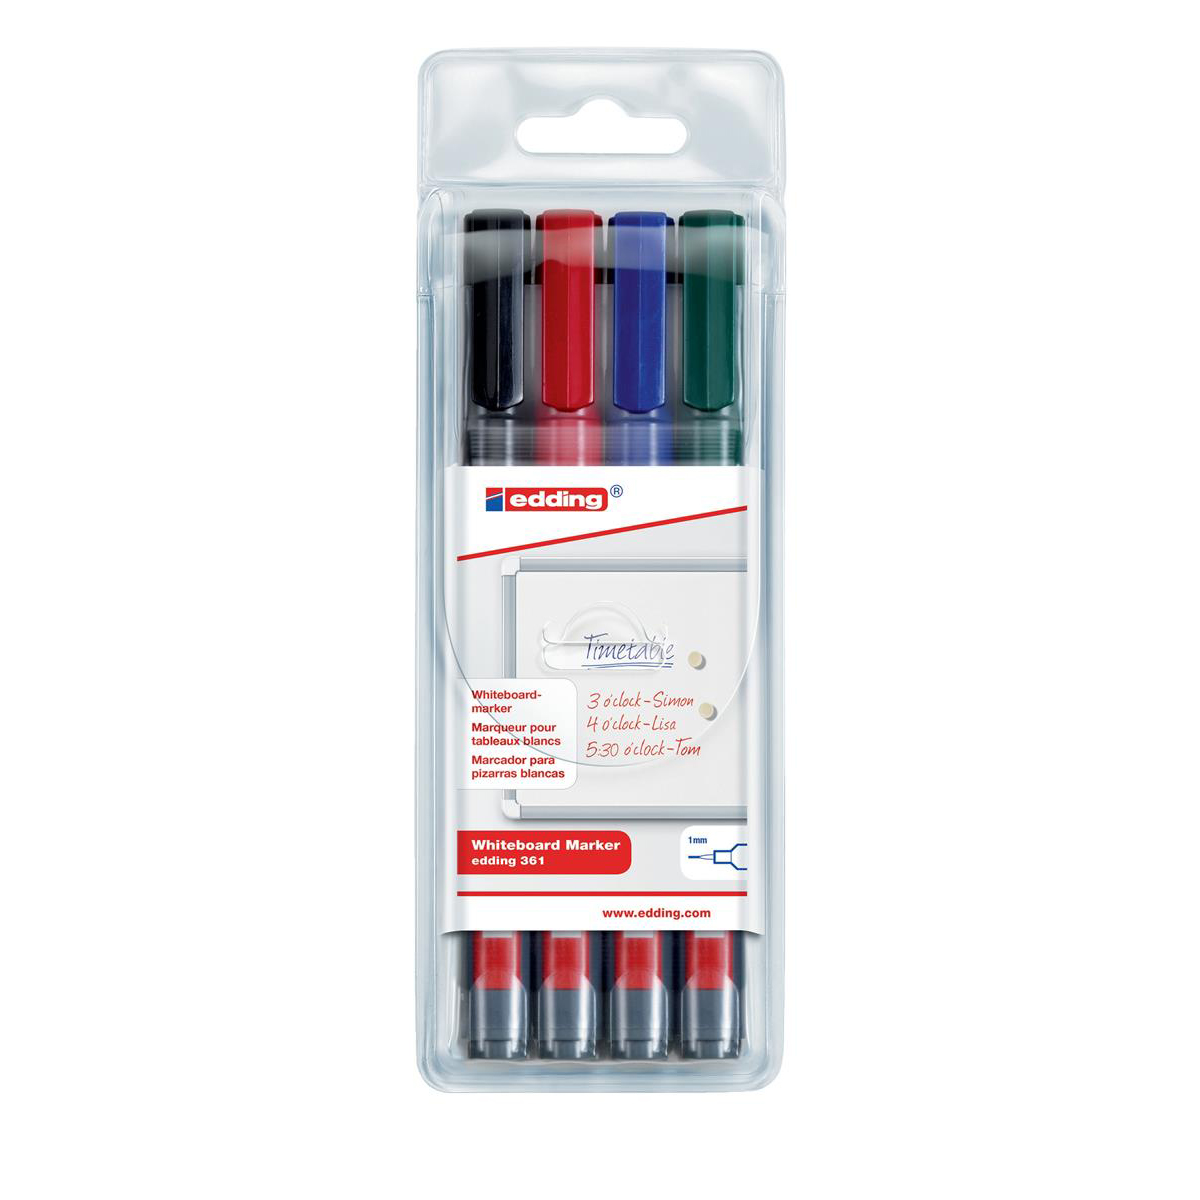 Edding 361/4S Whiteboard Marker Bullet Tip 1mm Line Assorted Ref 4-361-4 Pack 4